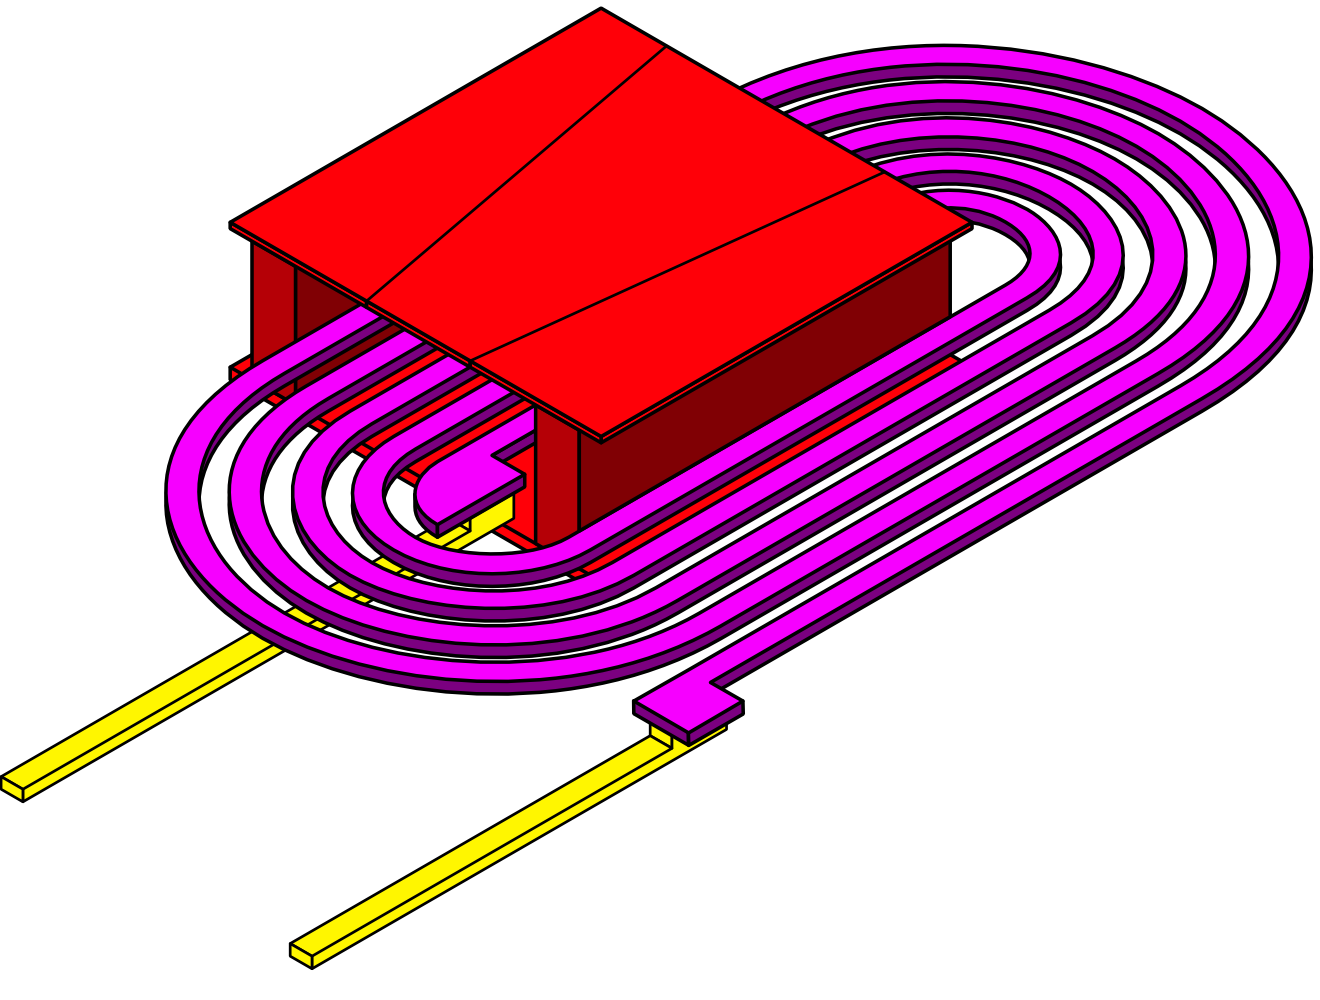 3D schematic view of planar servo writer